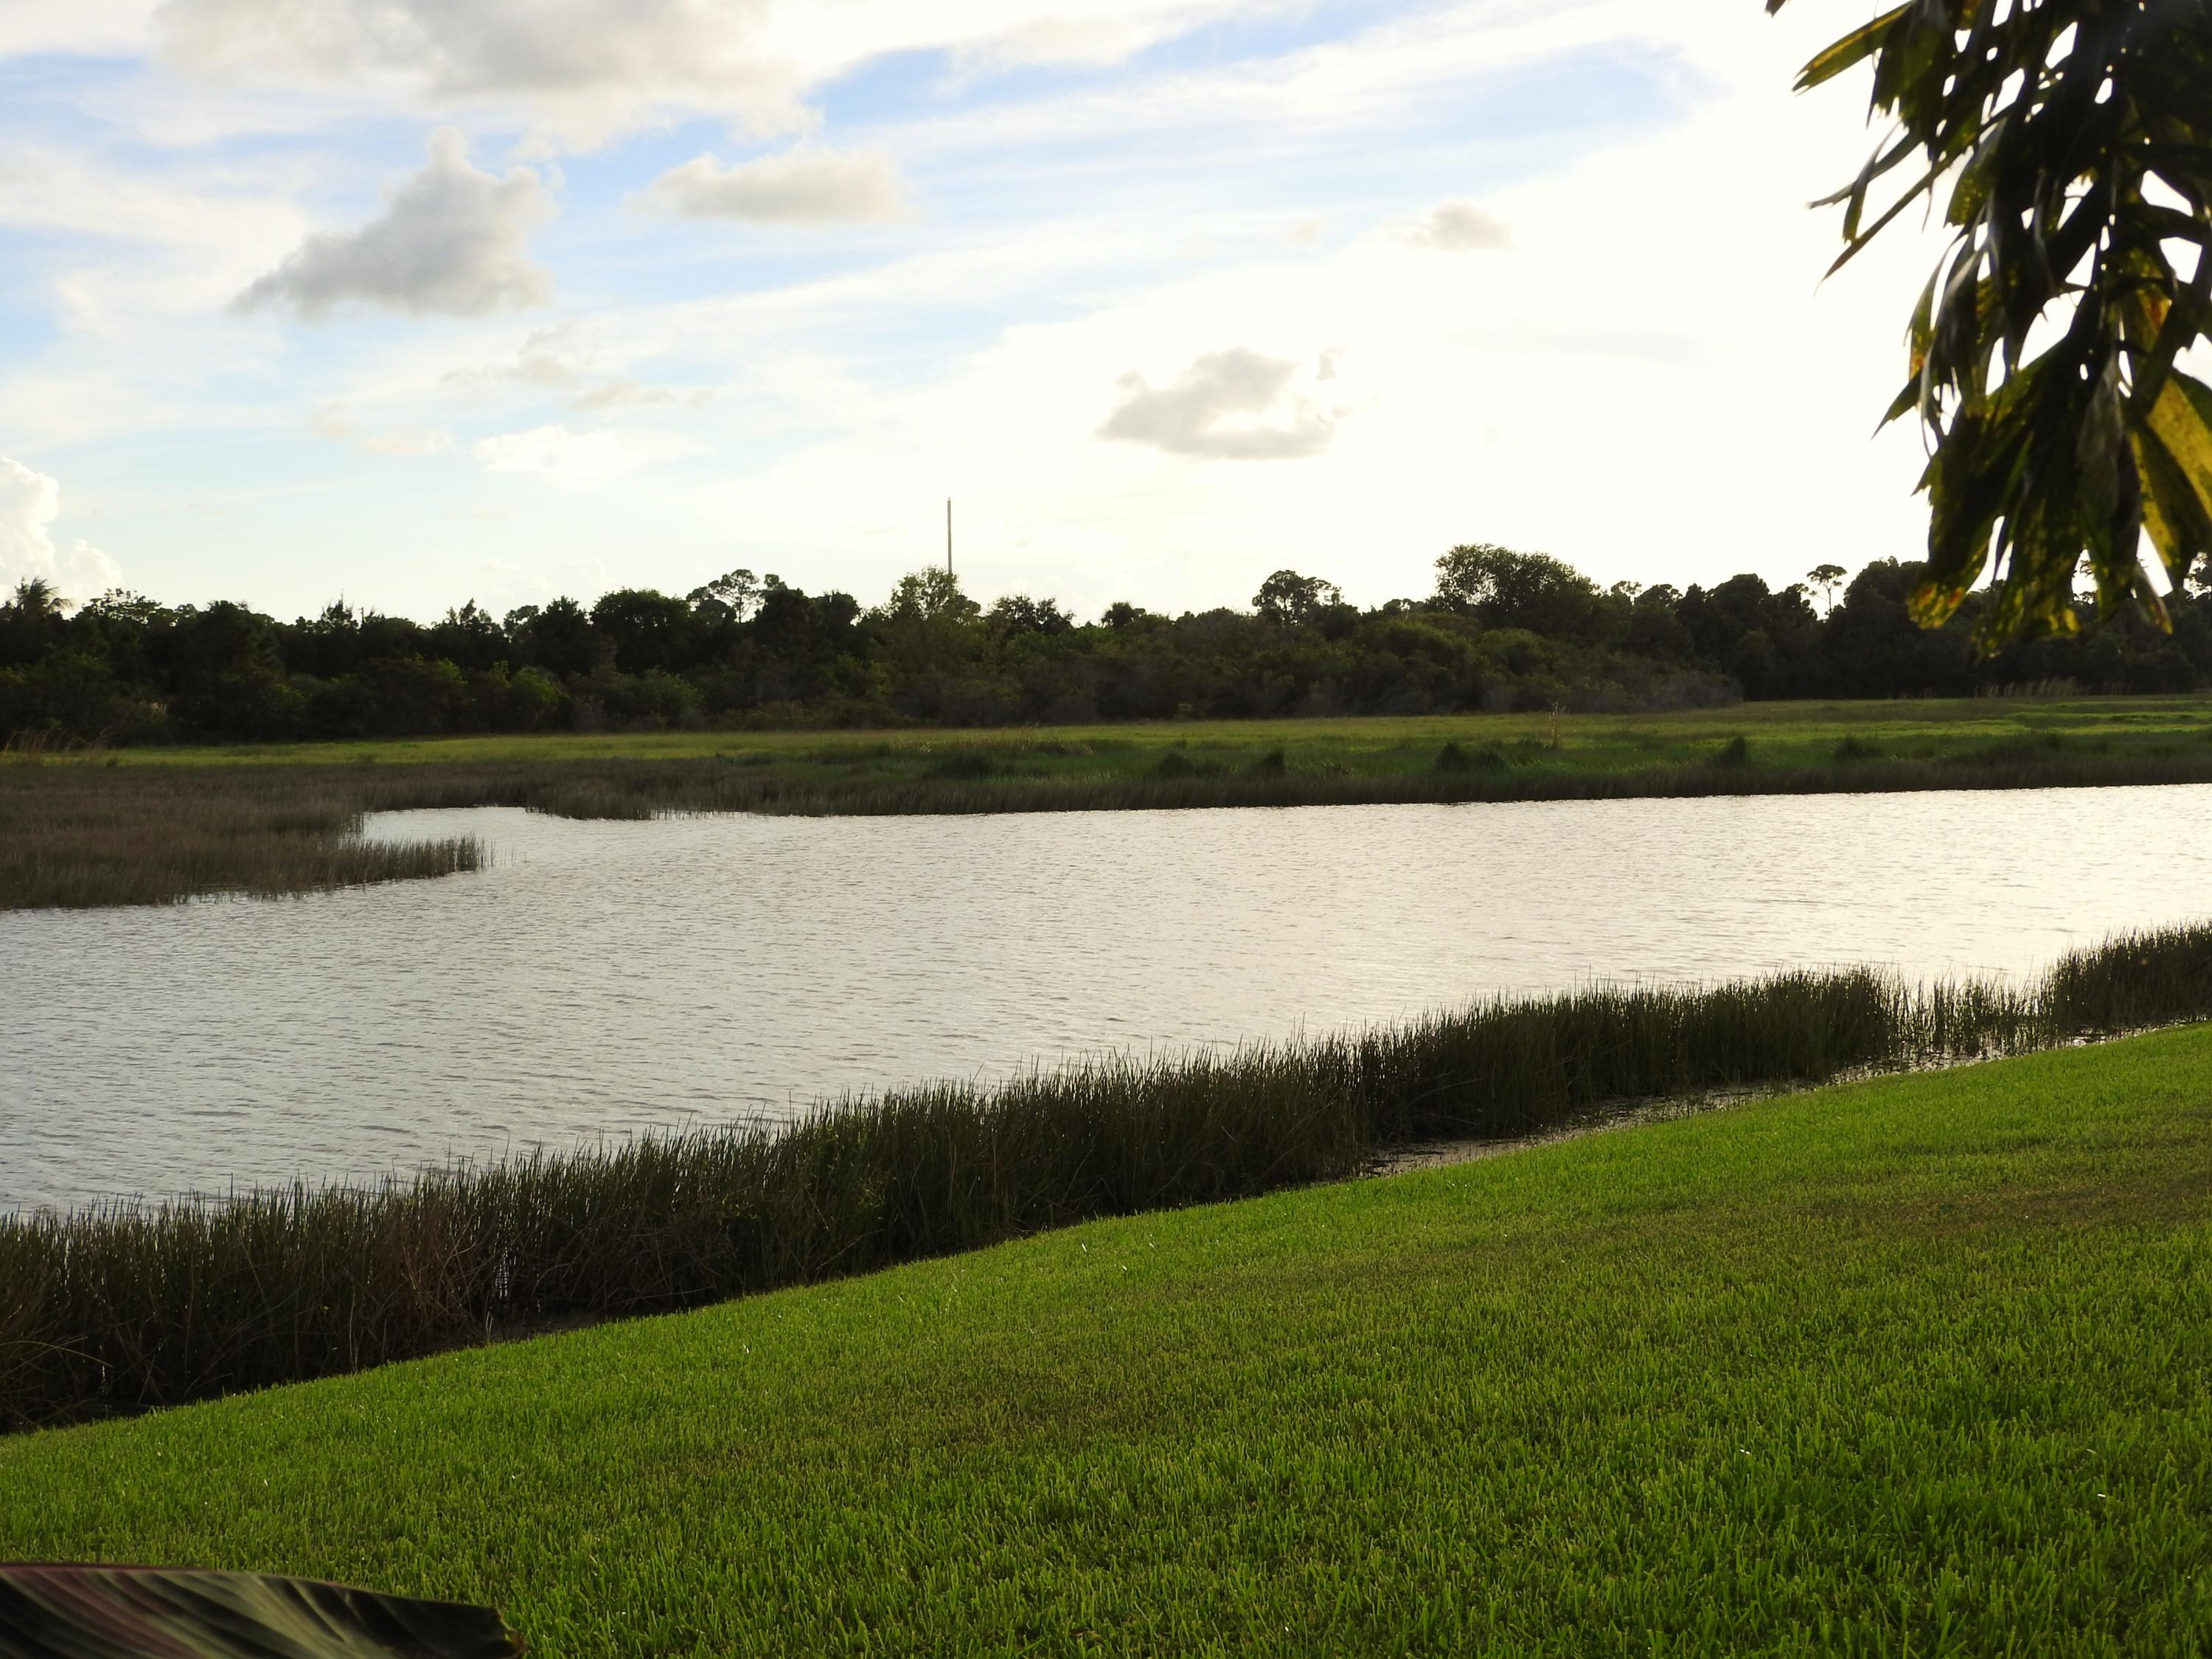 ST LUCIE WEST PLAT #136 TORTOISE CAY AT ST LUCIE WEST PHASE II LOT 139 (OR 2804-1530)